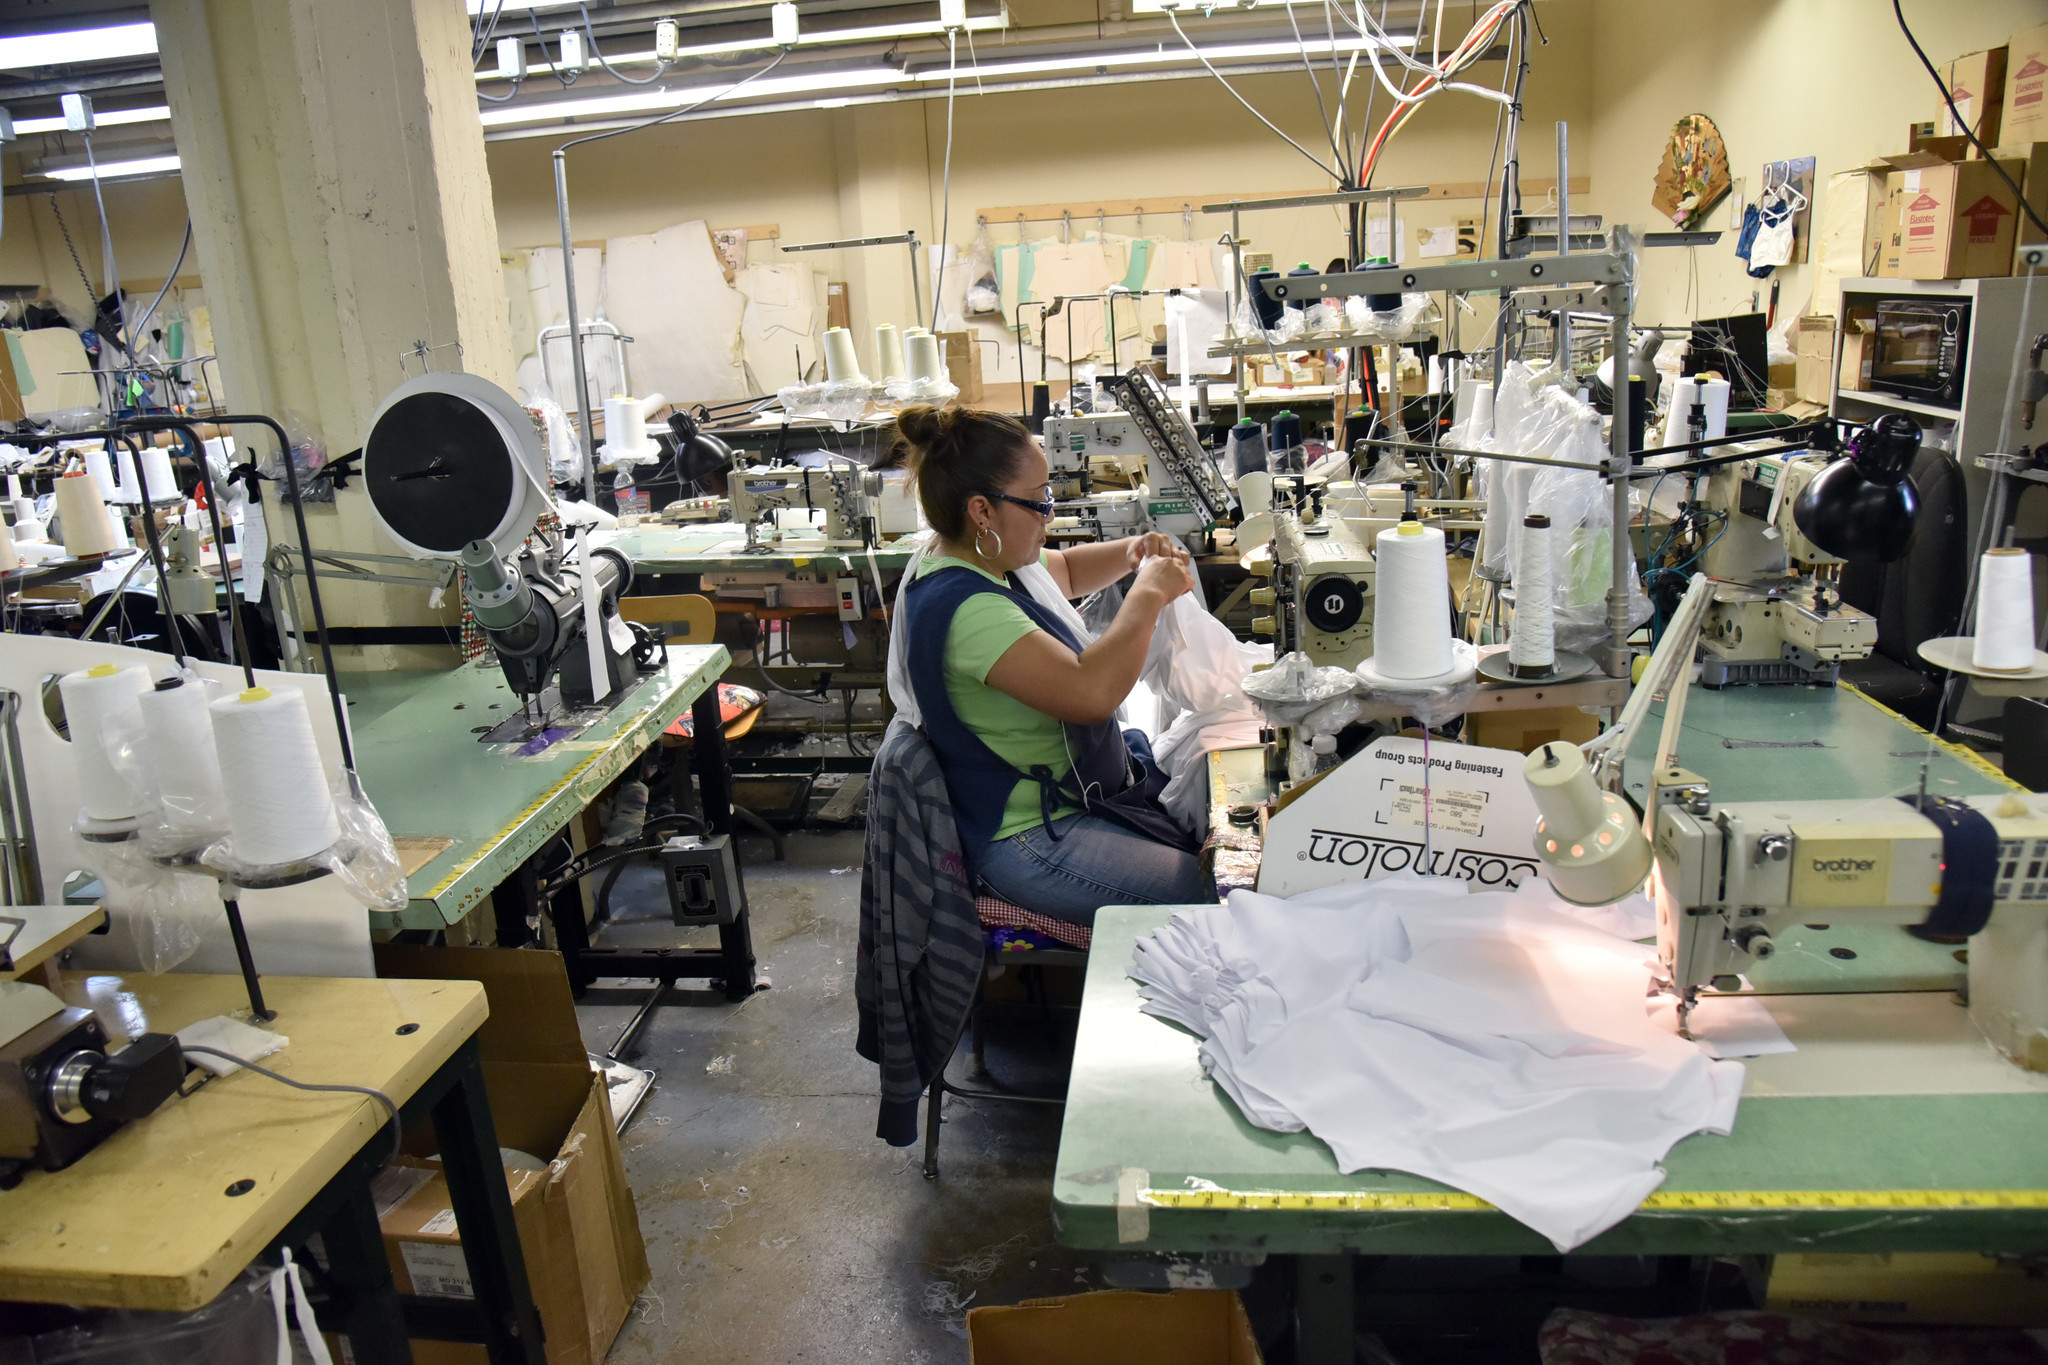 Fashions Unlimited Baltimore Based Apparel Maker Brings